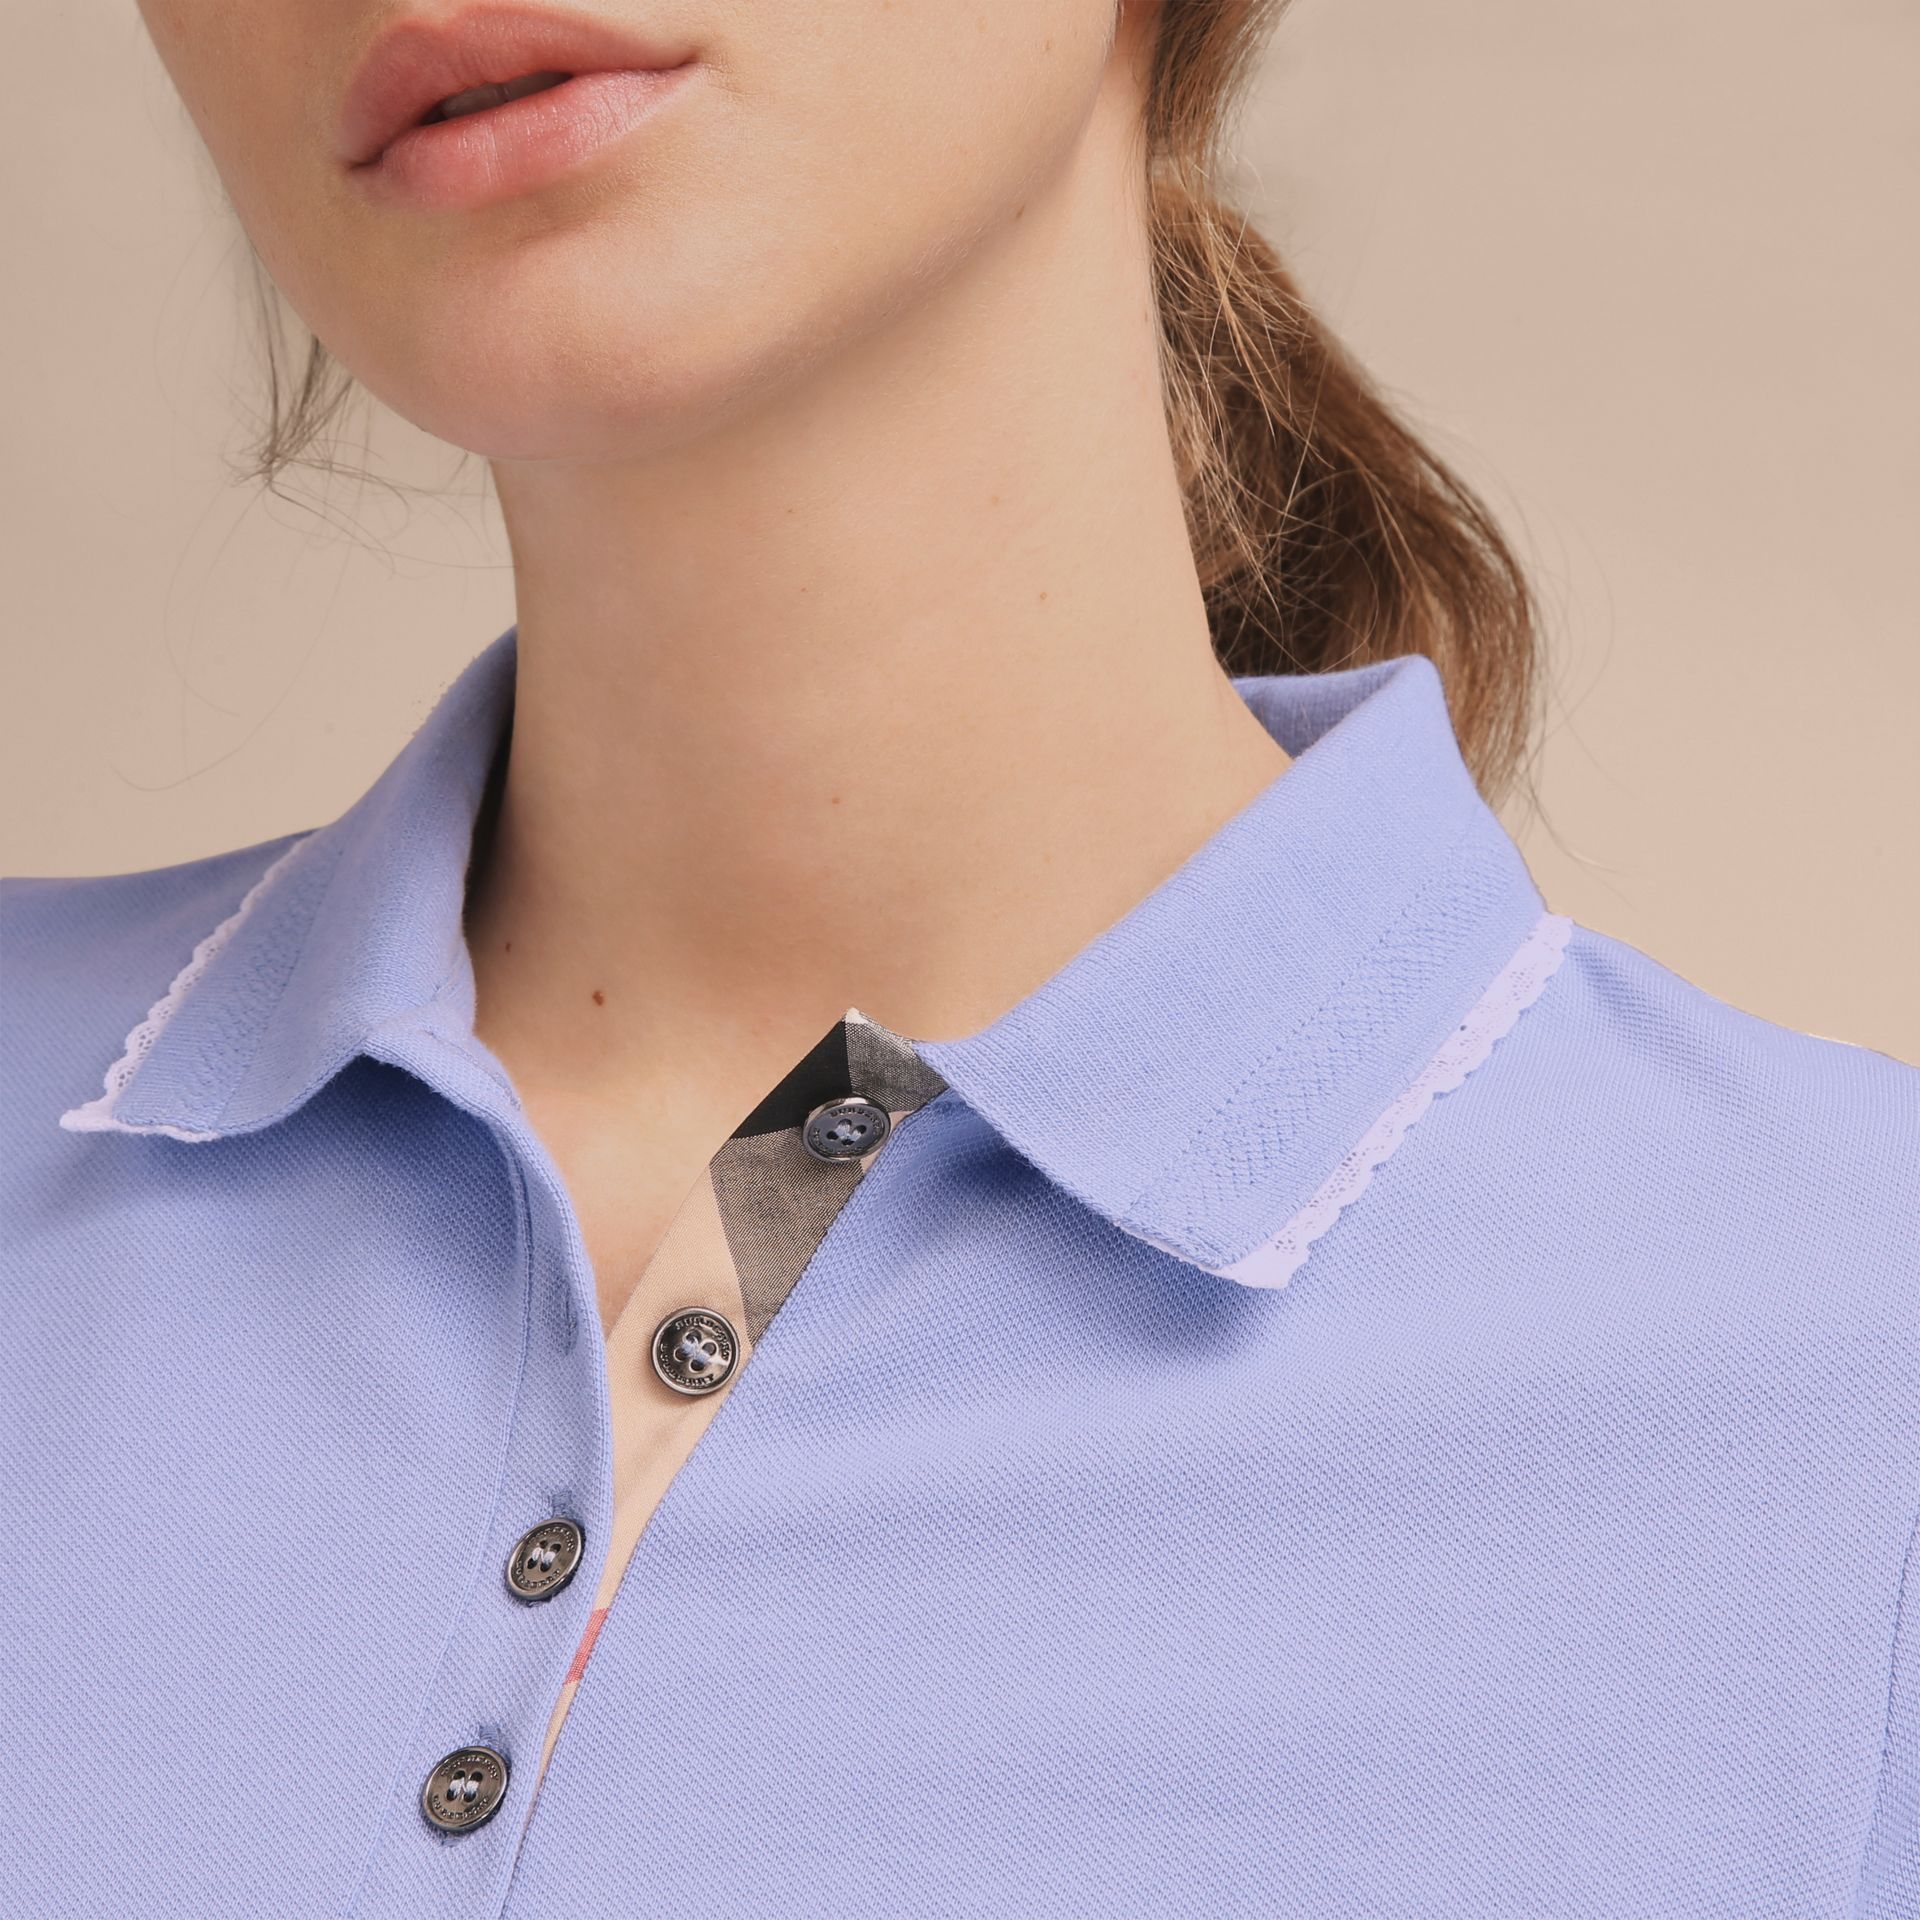 Lace Trim Cotton Blend Polo Shirt with Check Detail in Pale Cornflower Blue - Women | Burberry - gallery image 5